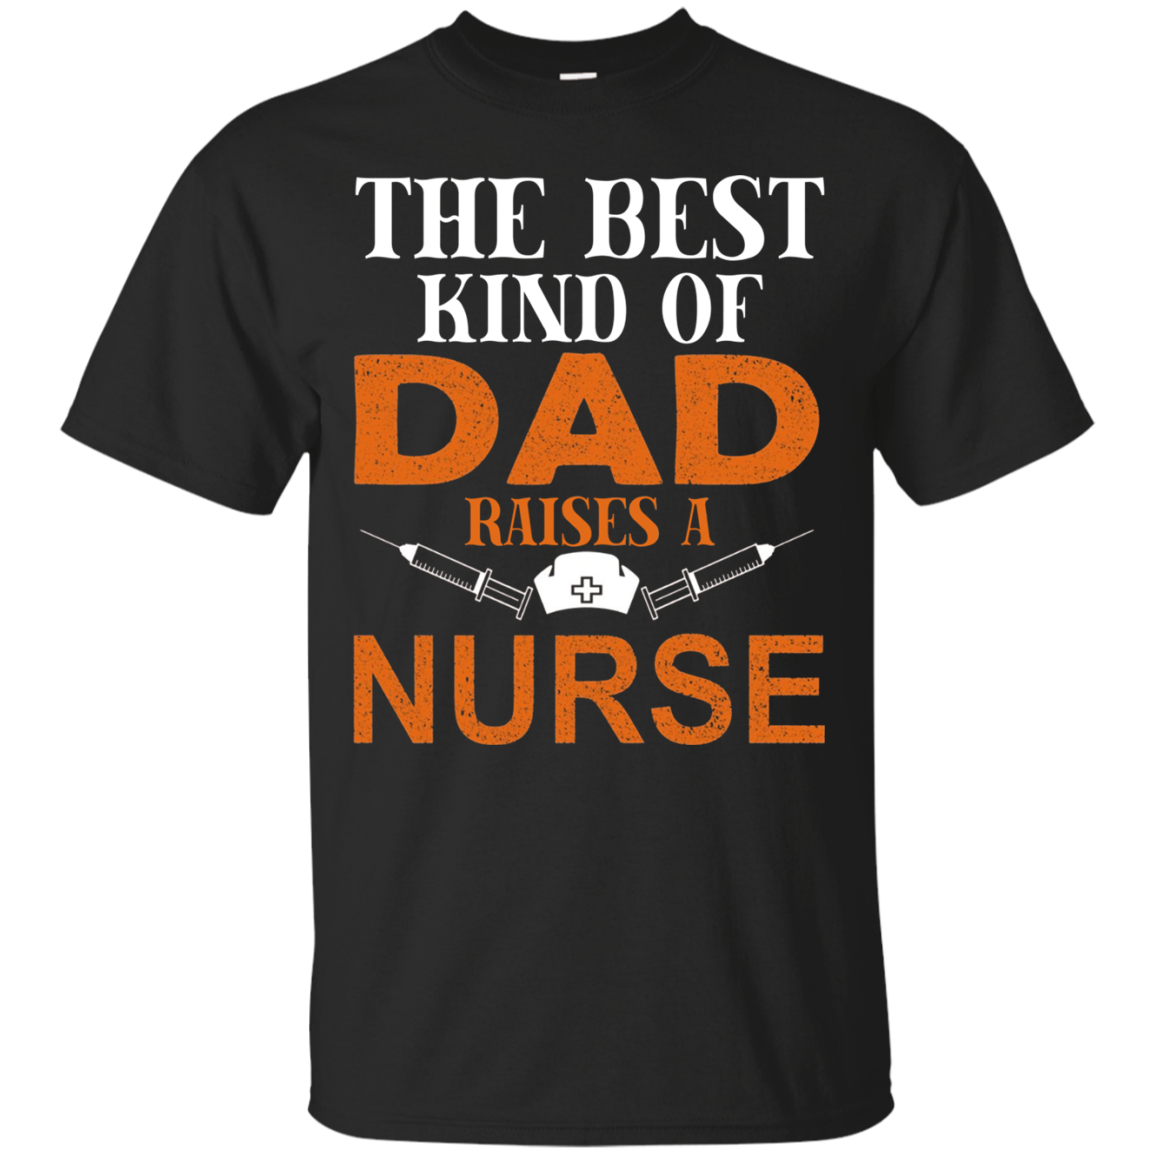 The Best Kind Of Dad Raises A Nurse Father Day T-shirt Men